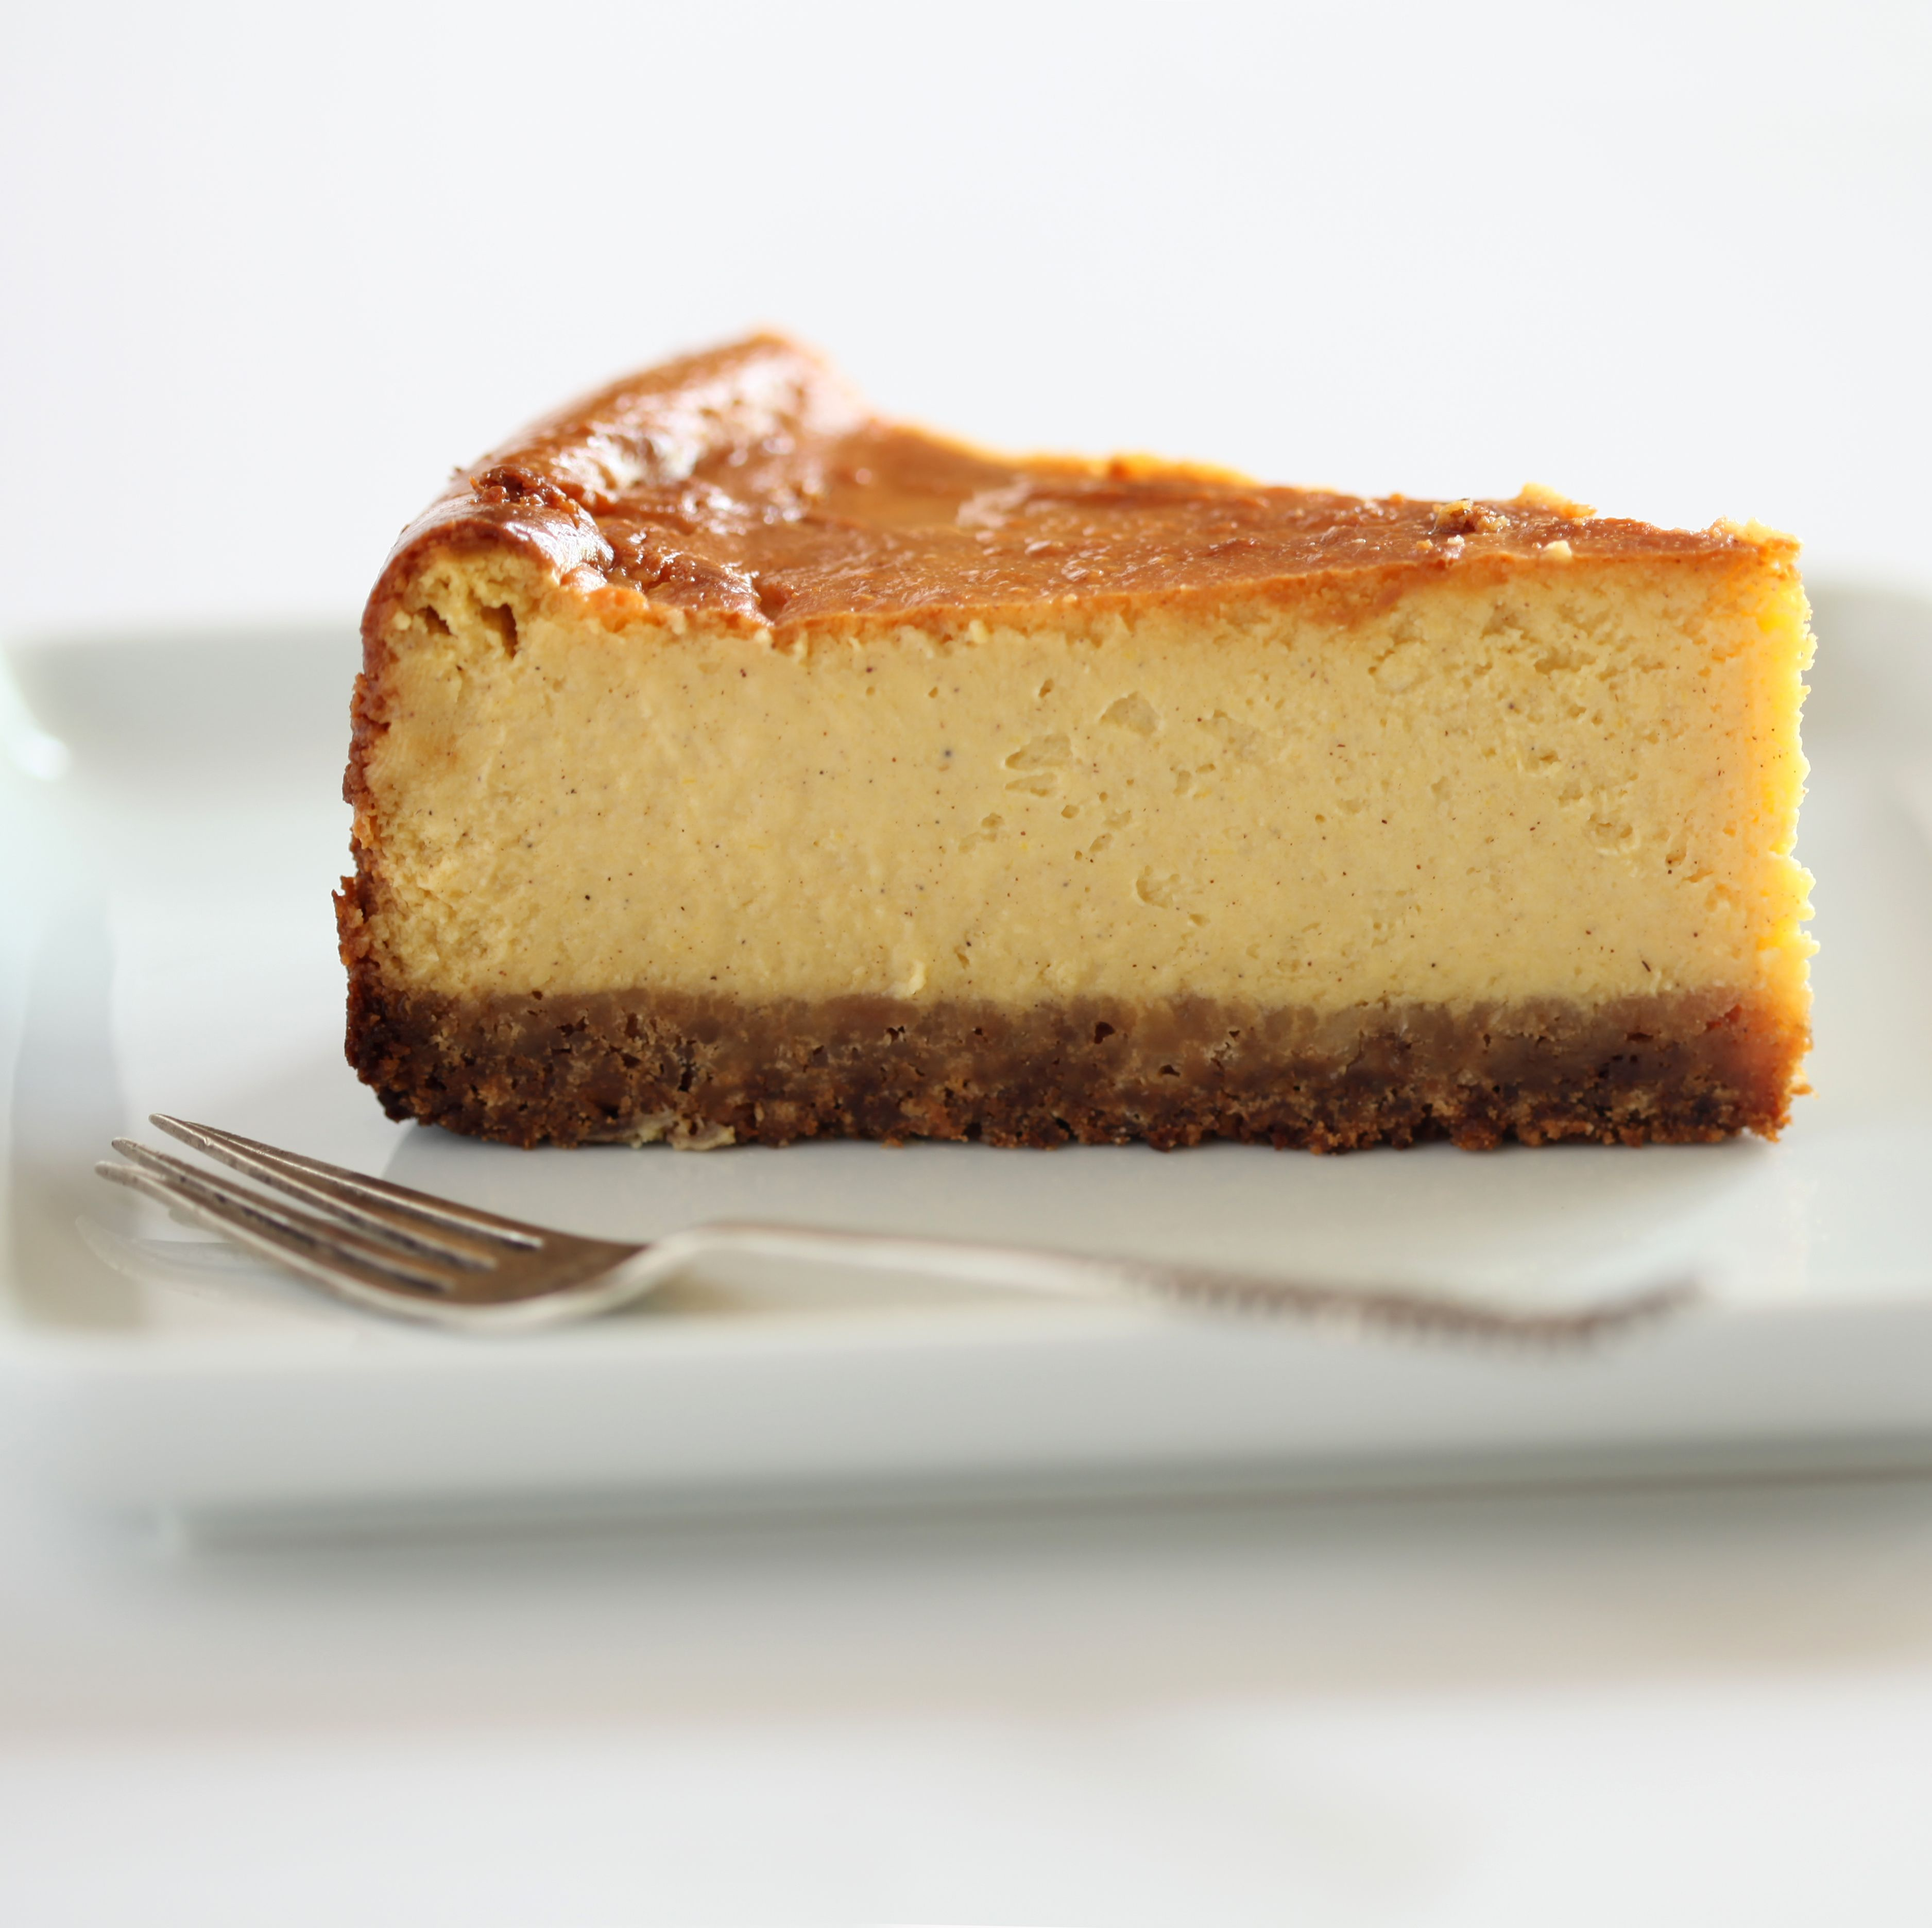 Costco Is Selling a 5-Pound Cheesecake That Tastes Like Thanksgiving